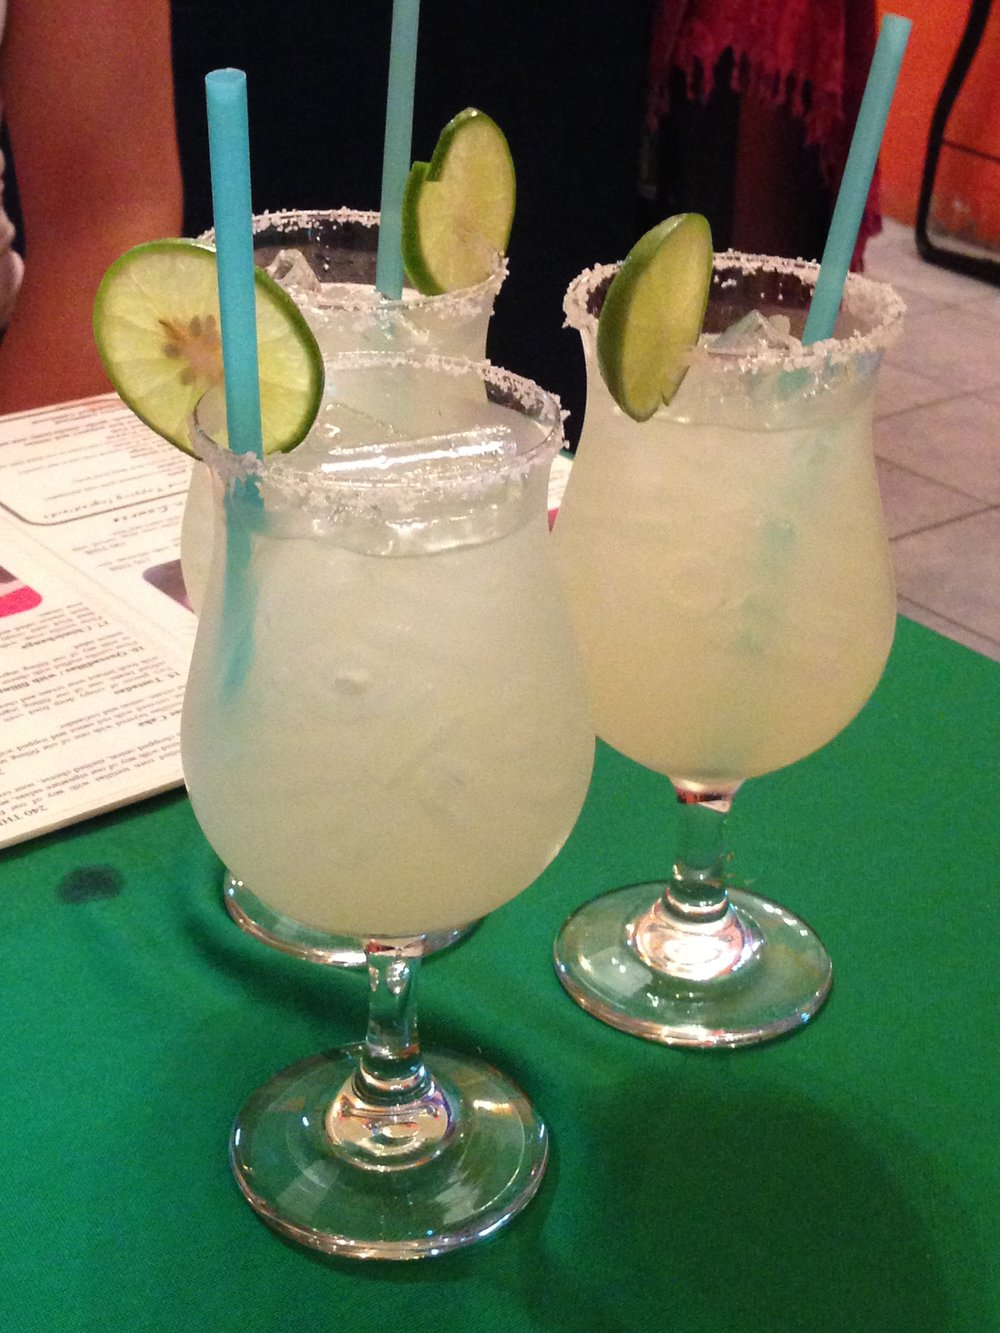 Taking a break from Thai beer and whiskey for some margaritas.